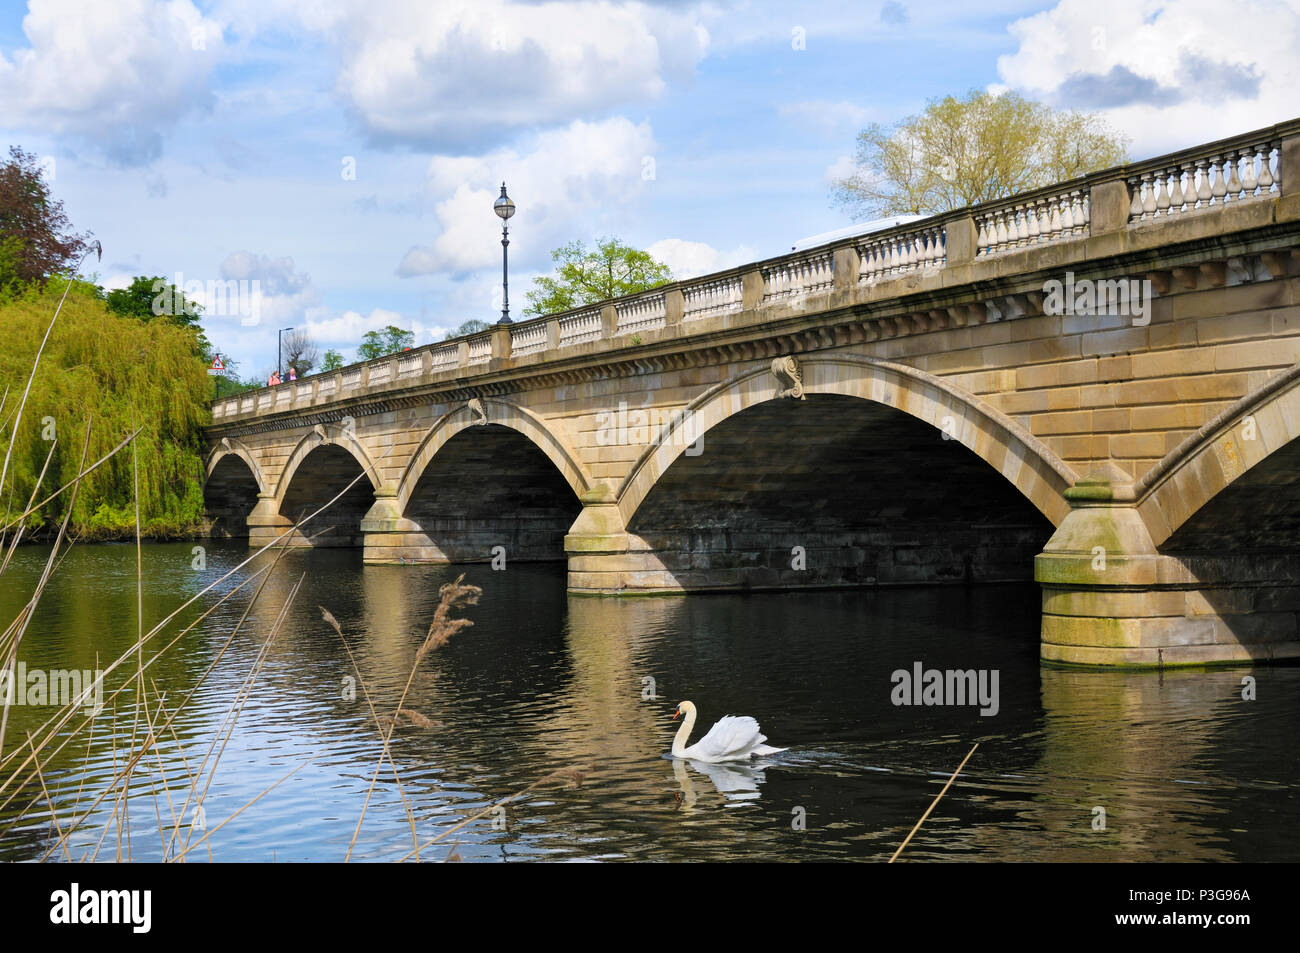 The Serpentine Bridge in Hyde Park, London, England, UK - Stock Image